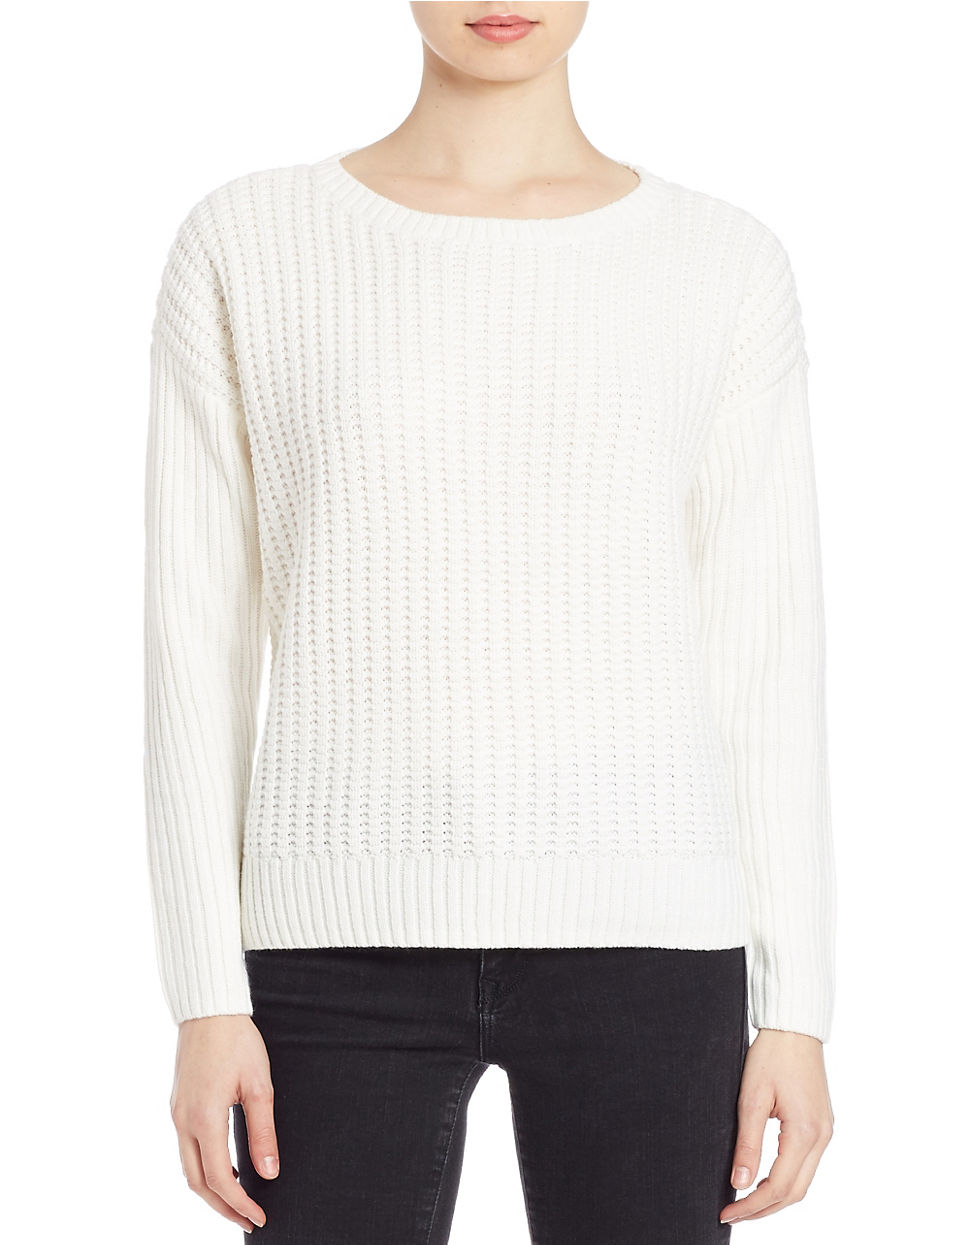 Lord Taylor Knit Crewneck Sweater In Beige Ivory